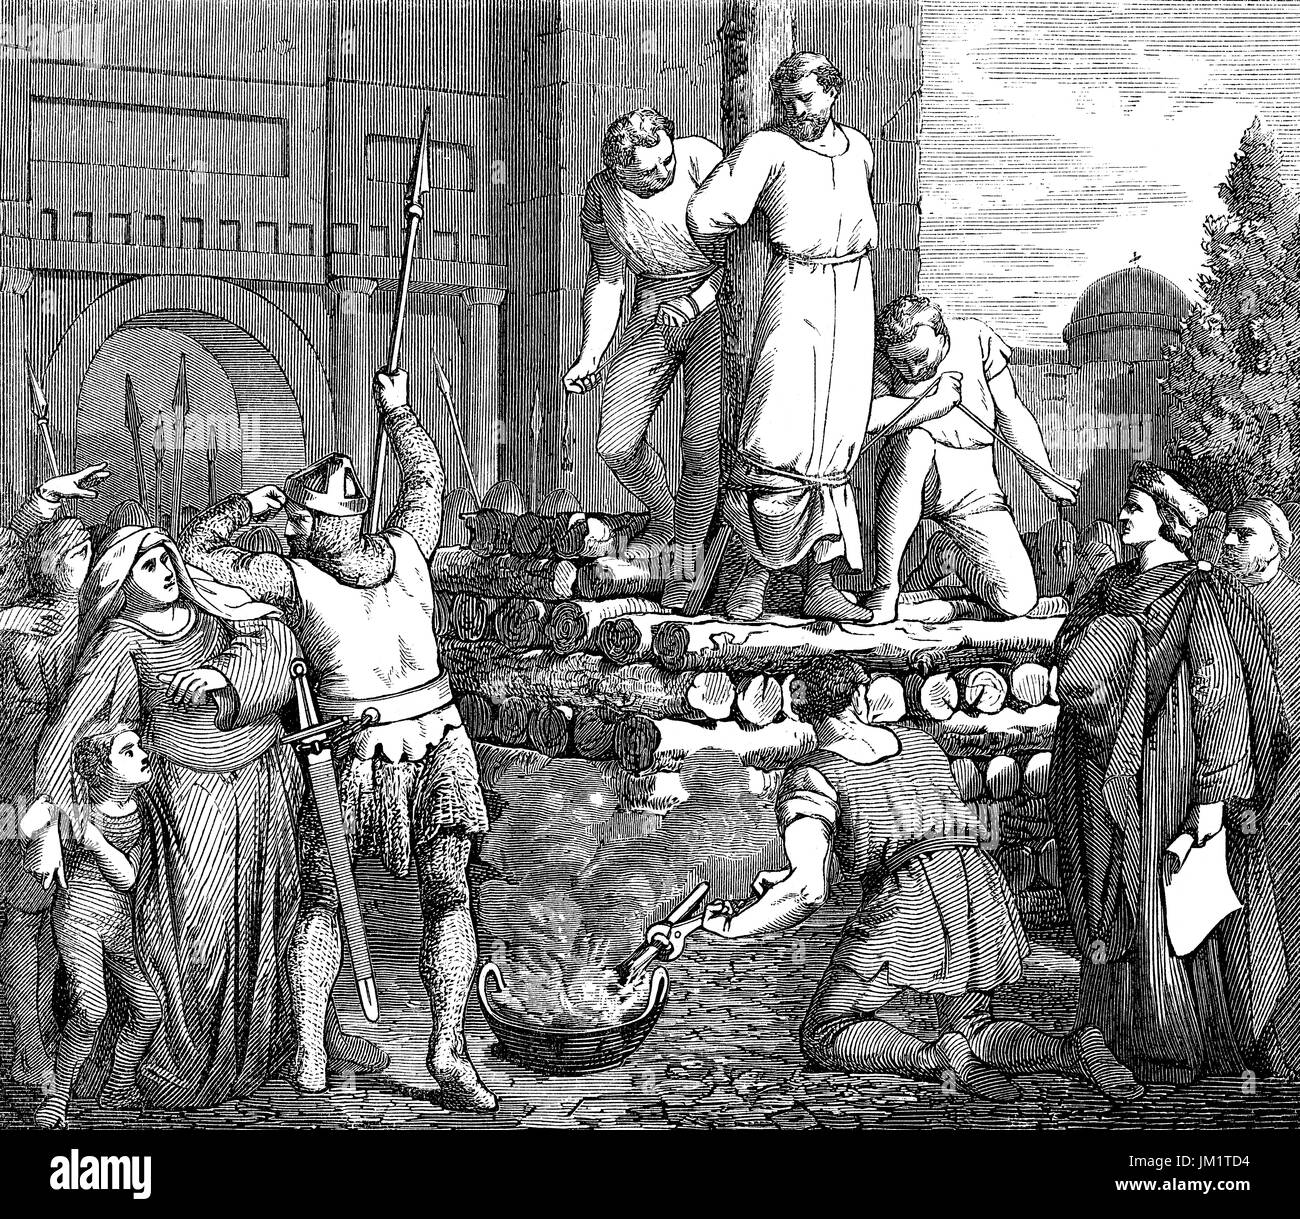 Arnold of Brescia burned at the stake at the hands of the Papal guards, June 1155 - Stock Image